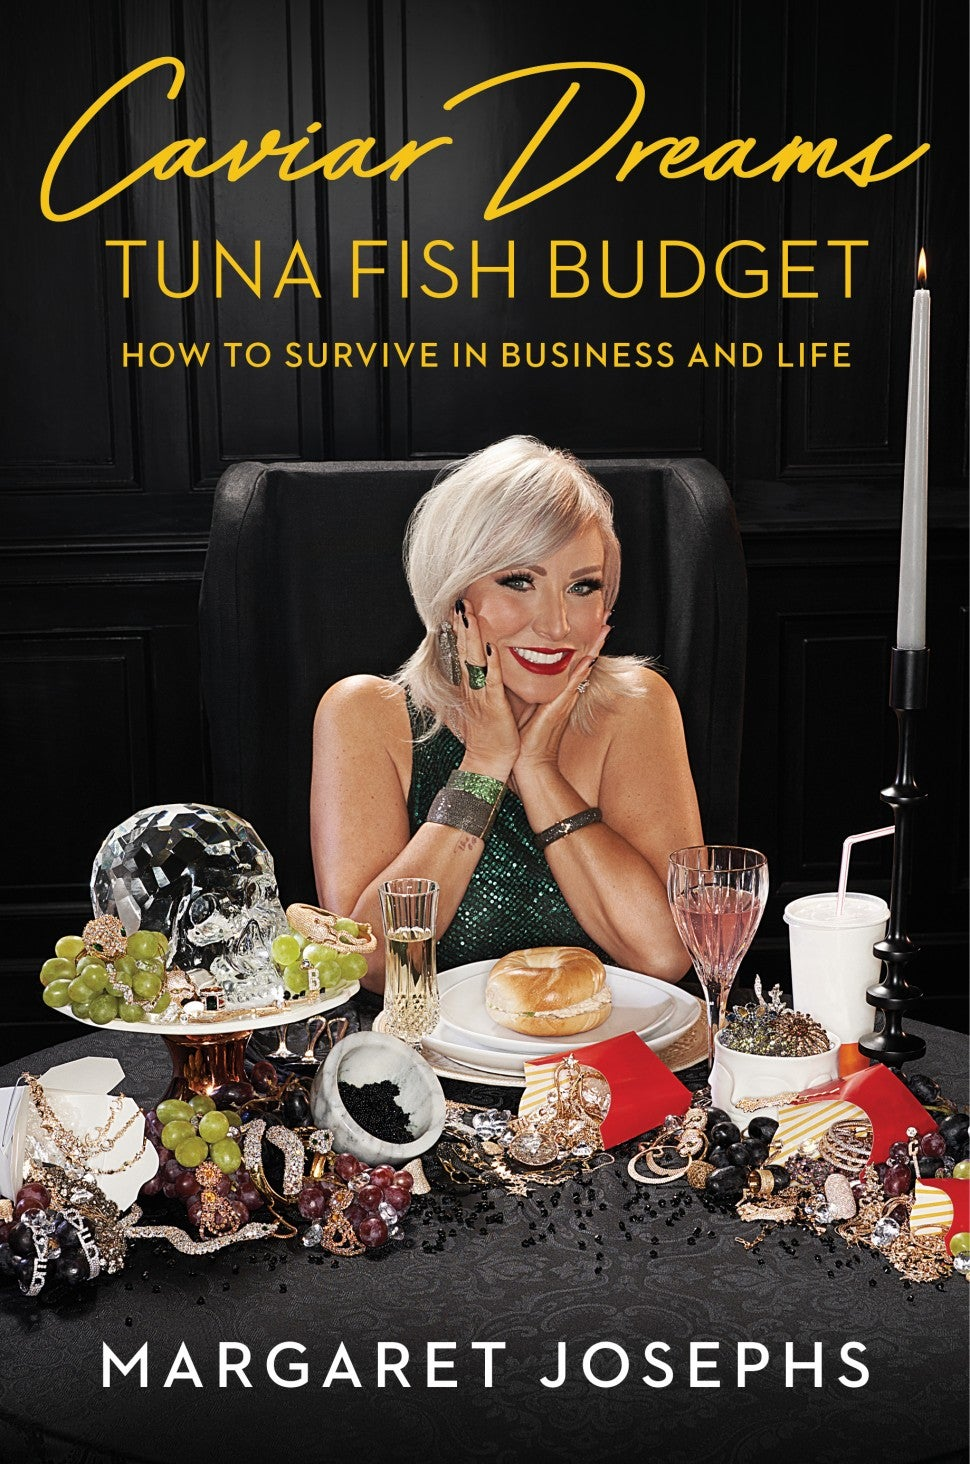 Margaret Josephs' book cover for her memoir, 'Caviar Dreams, Tuna Fish Budget.'